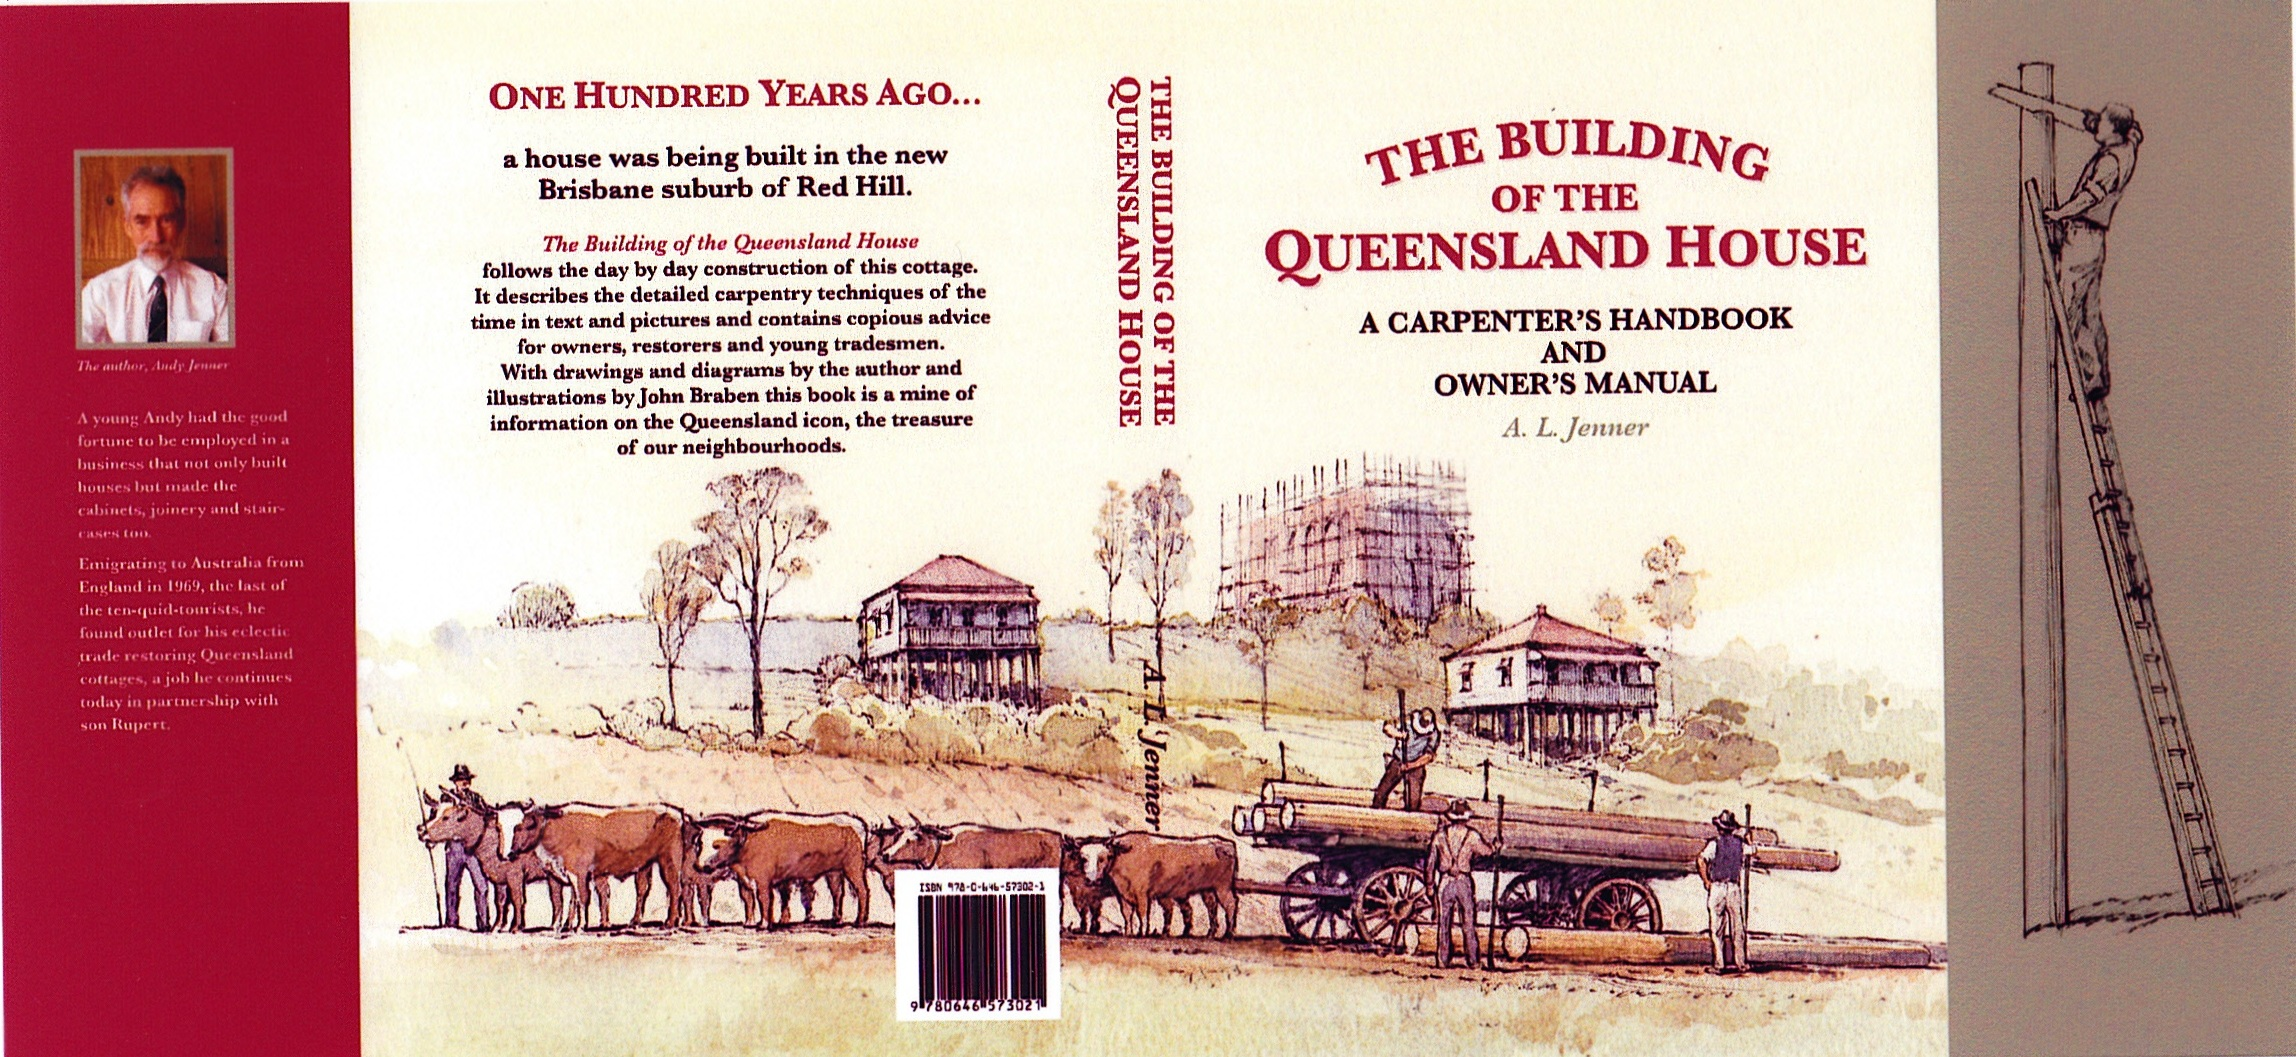 The Building of the Queensland House